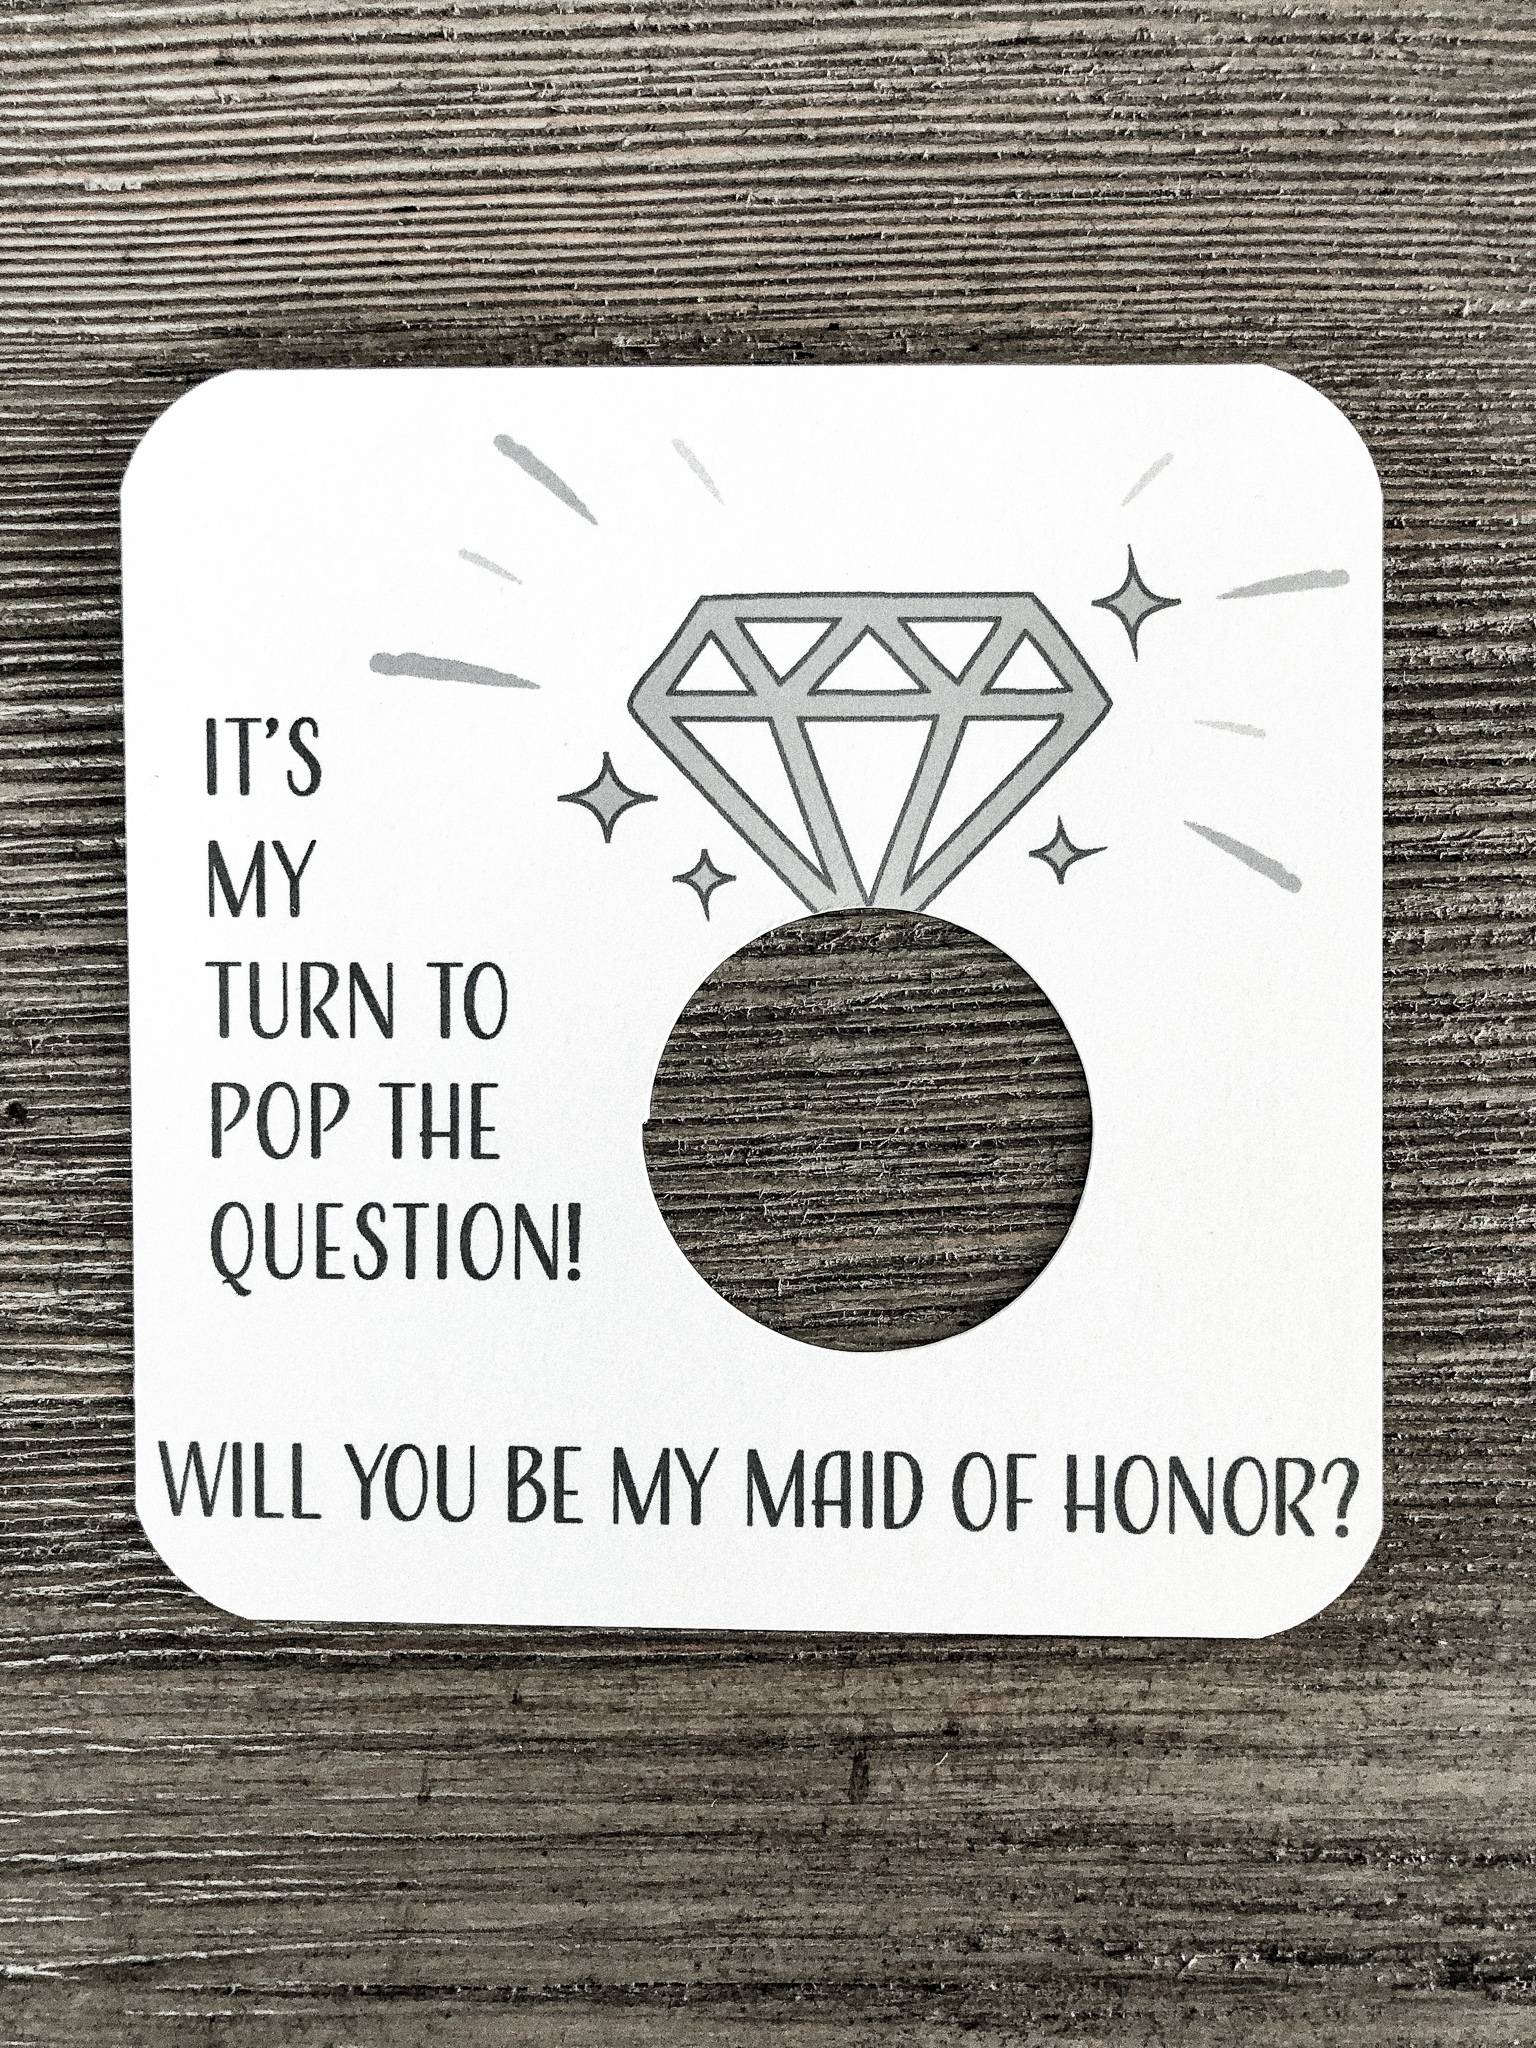 It's my turn to pop the question! Will you be my maid of honor?